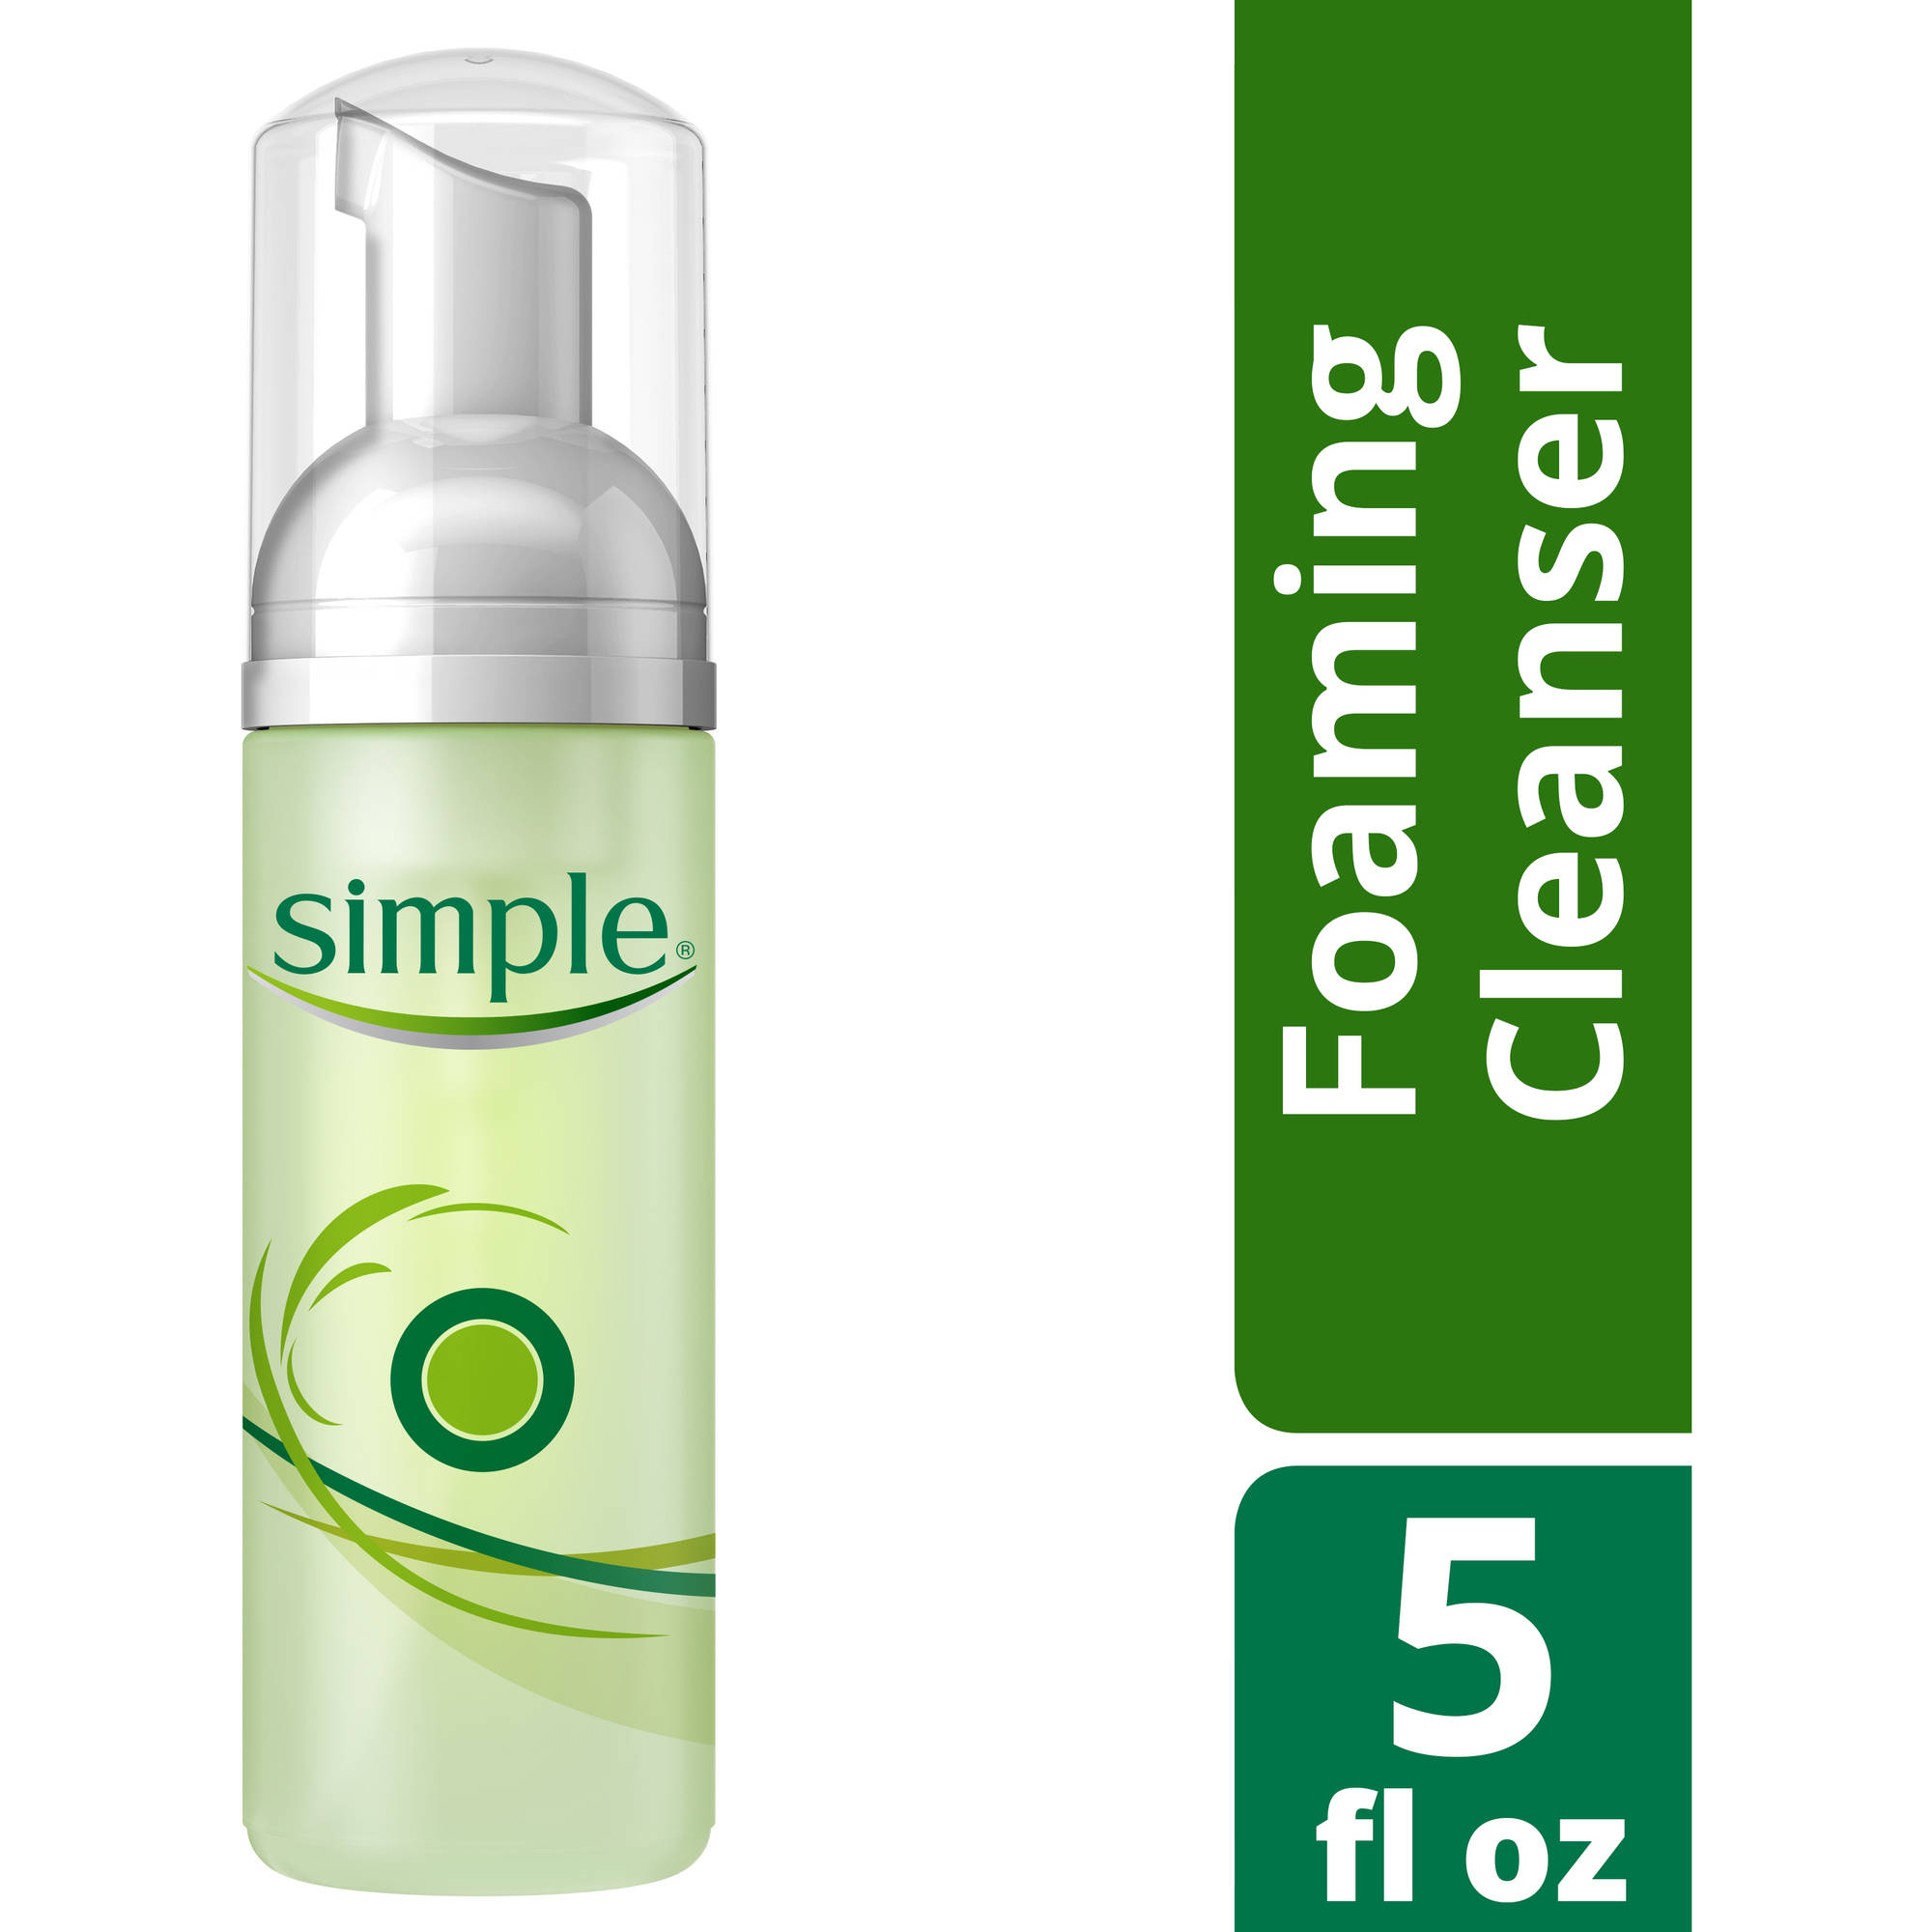 Simple Foaming Facial Cleanser, 5 oz